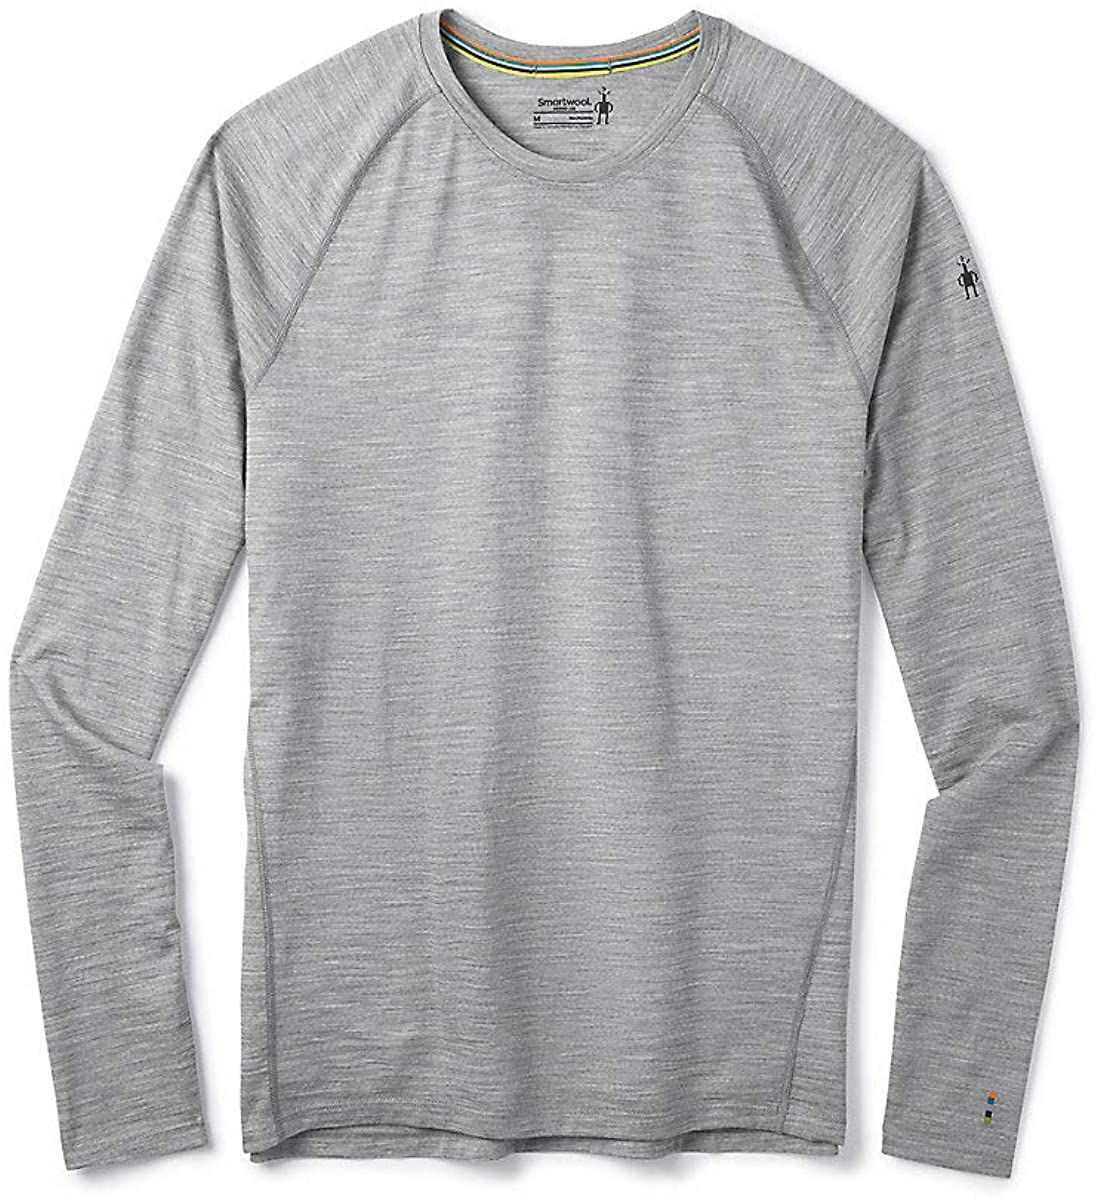 Men's Smartwool Merino 150 Base Layer Long Sleeve in Light Gray Heather from the side view